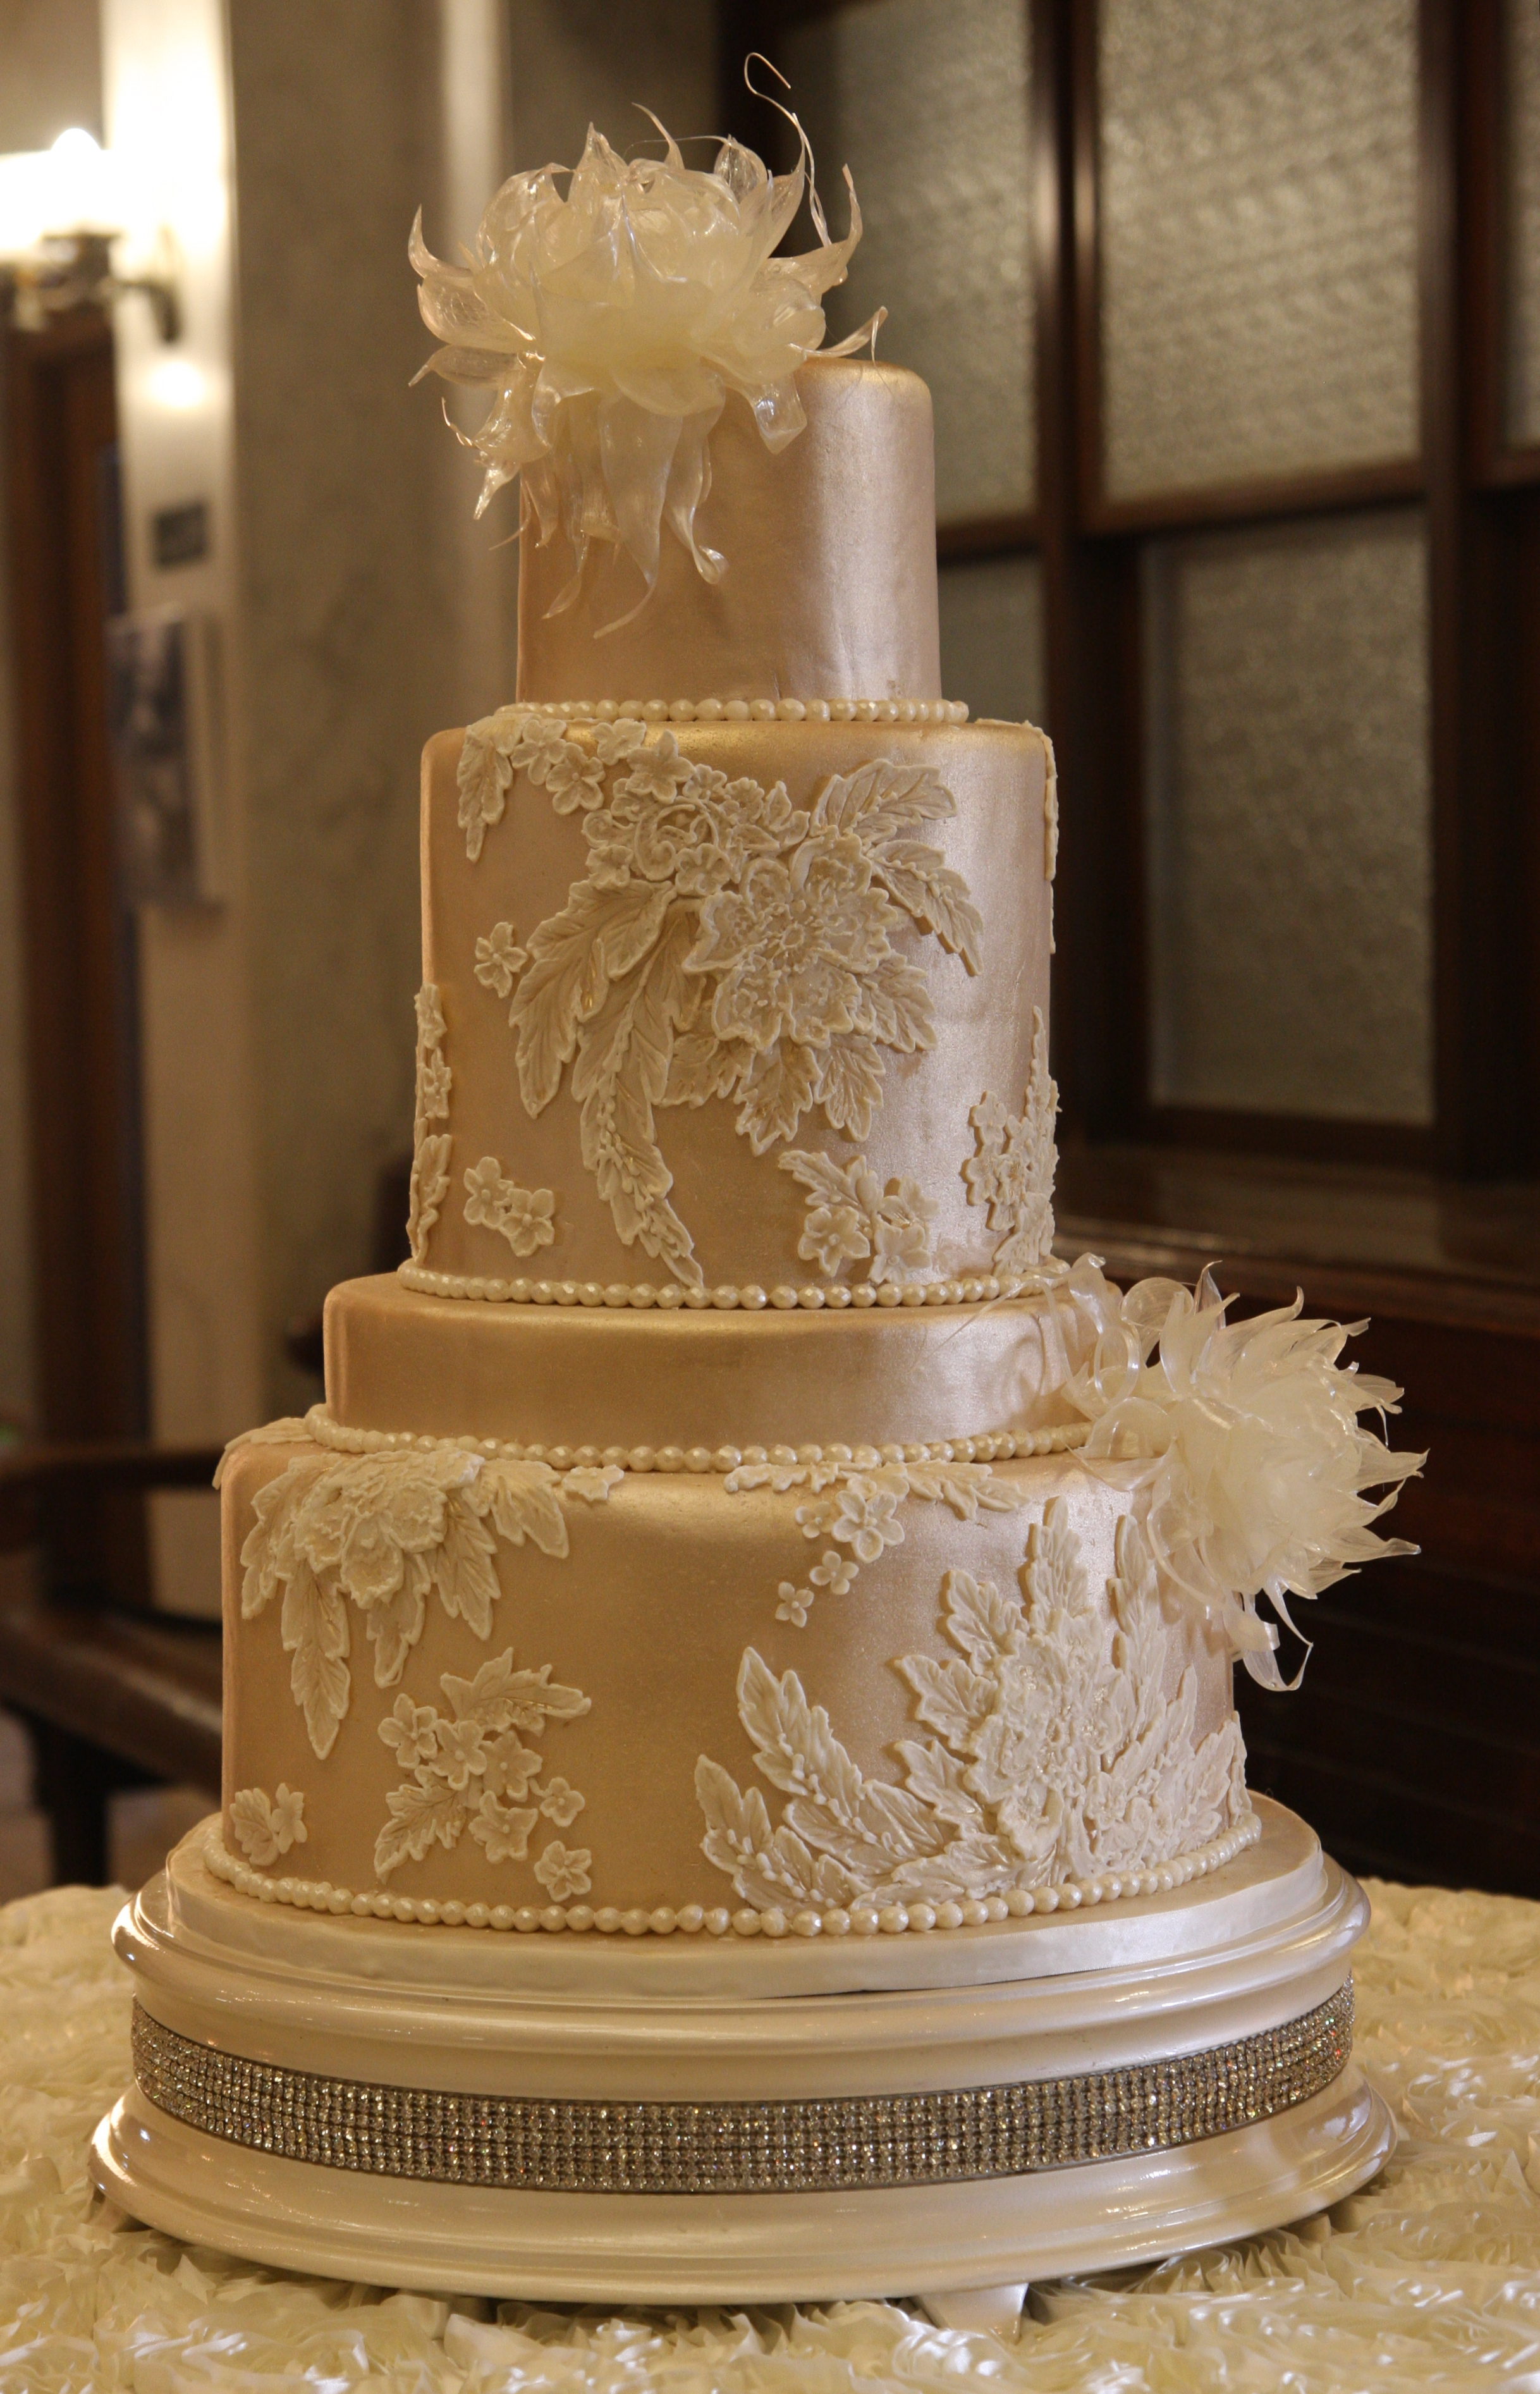 le Gateau Wedding Cakes by Sue Larson in Columbus Ohio